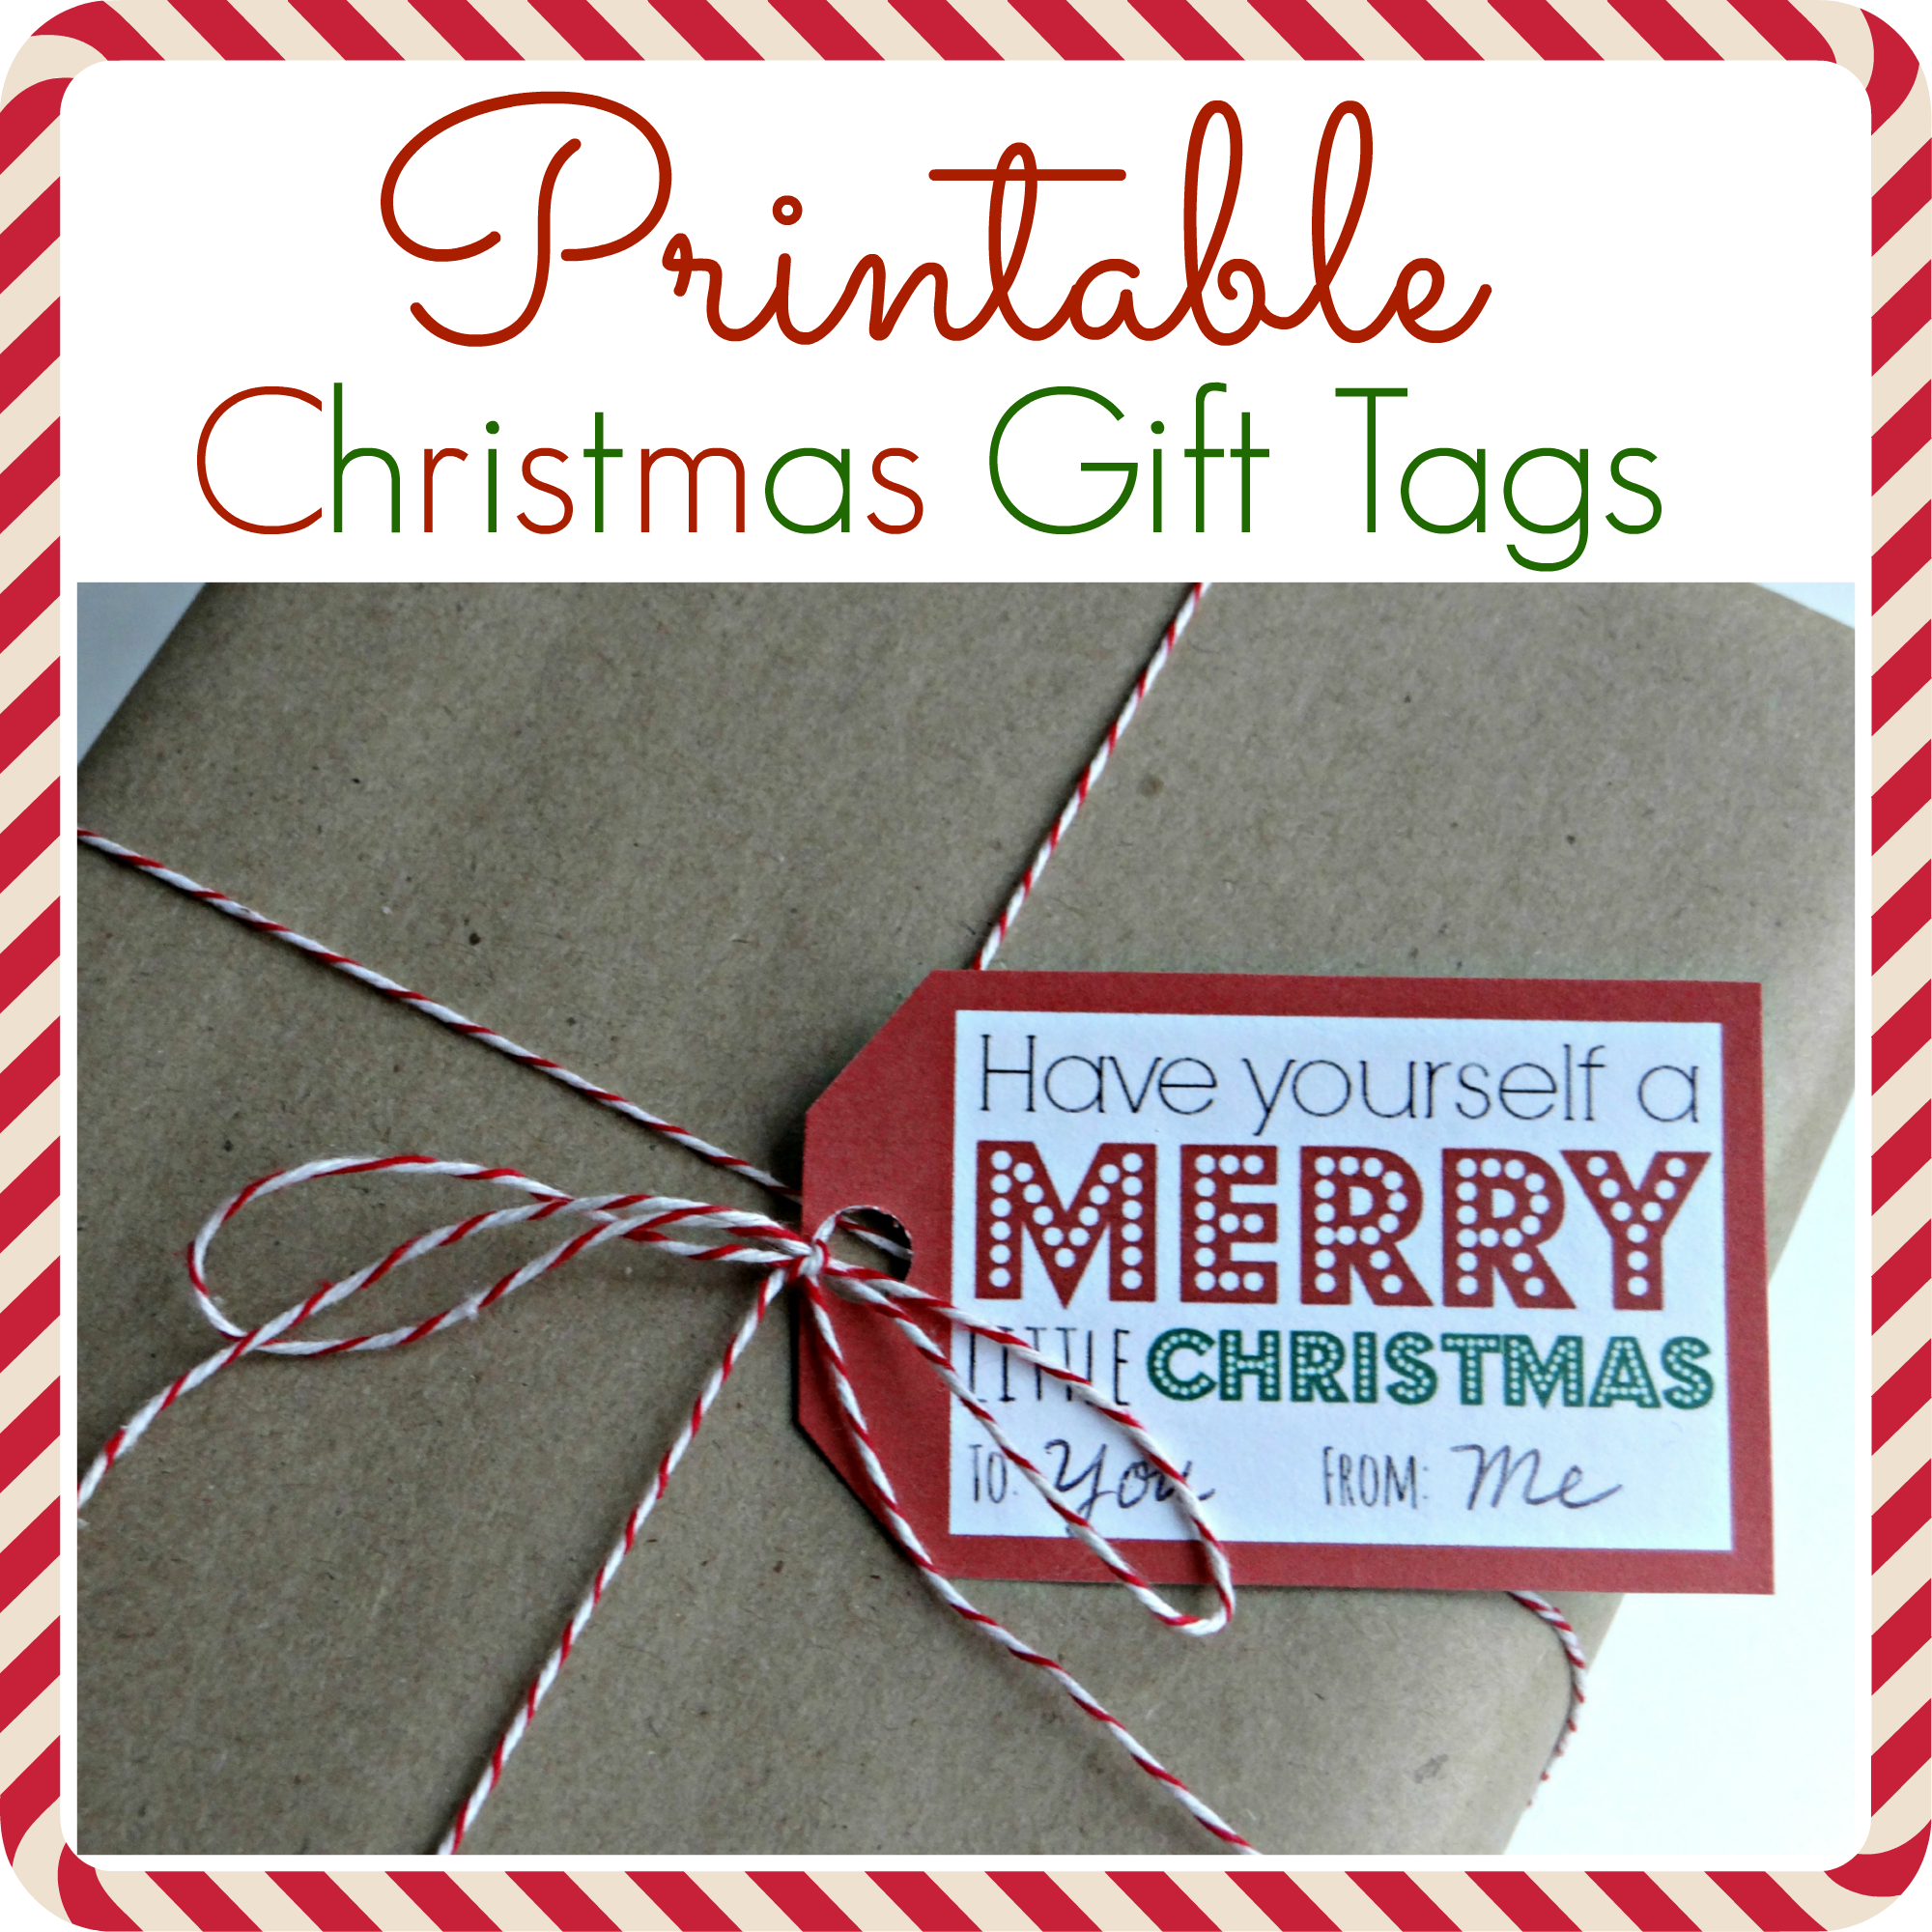 photo regarding Free Printable Gift Tags Personalized called Printable Xmas Present Tags